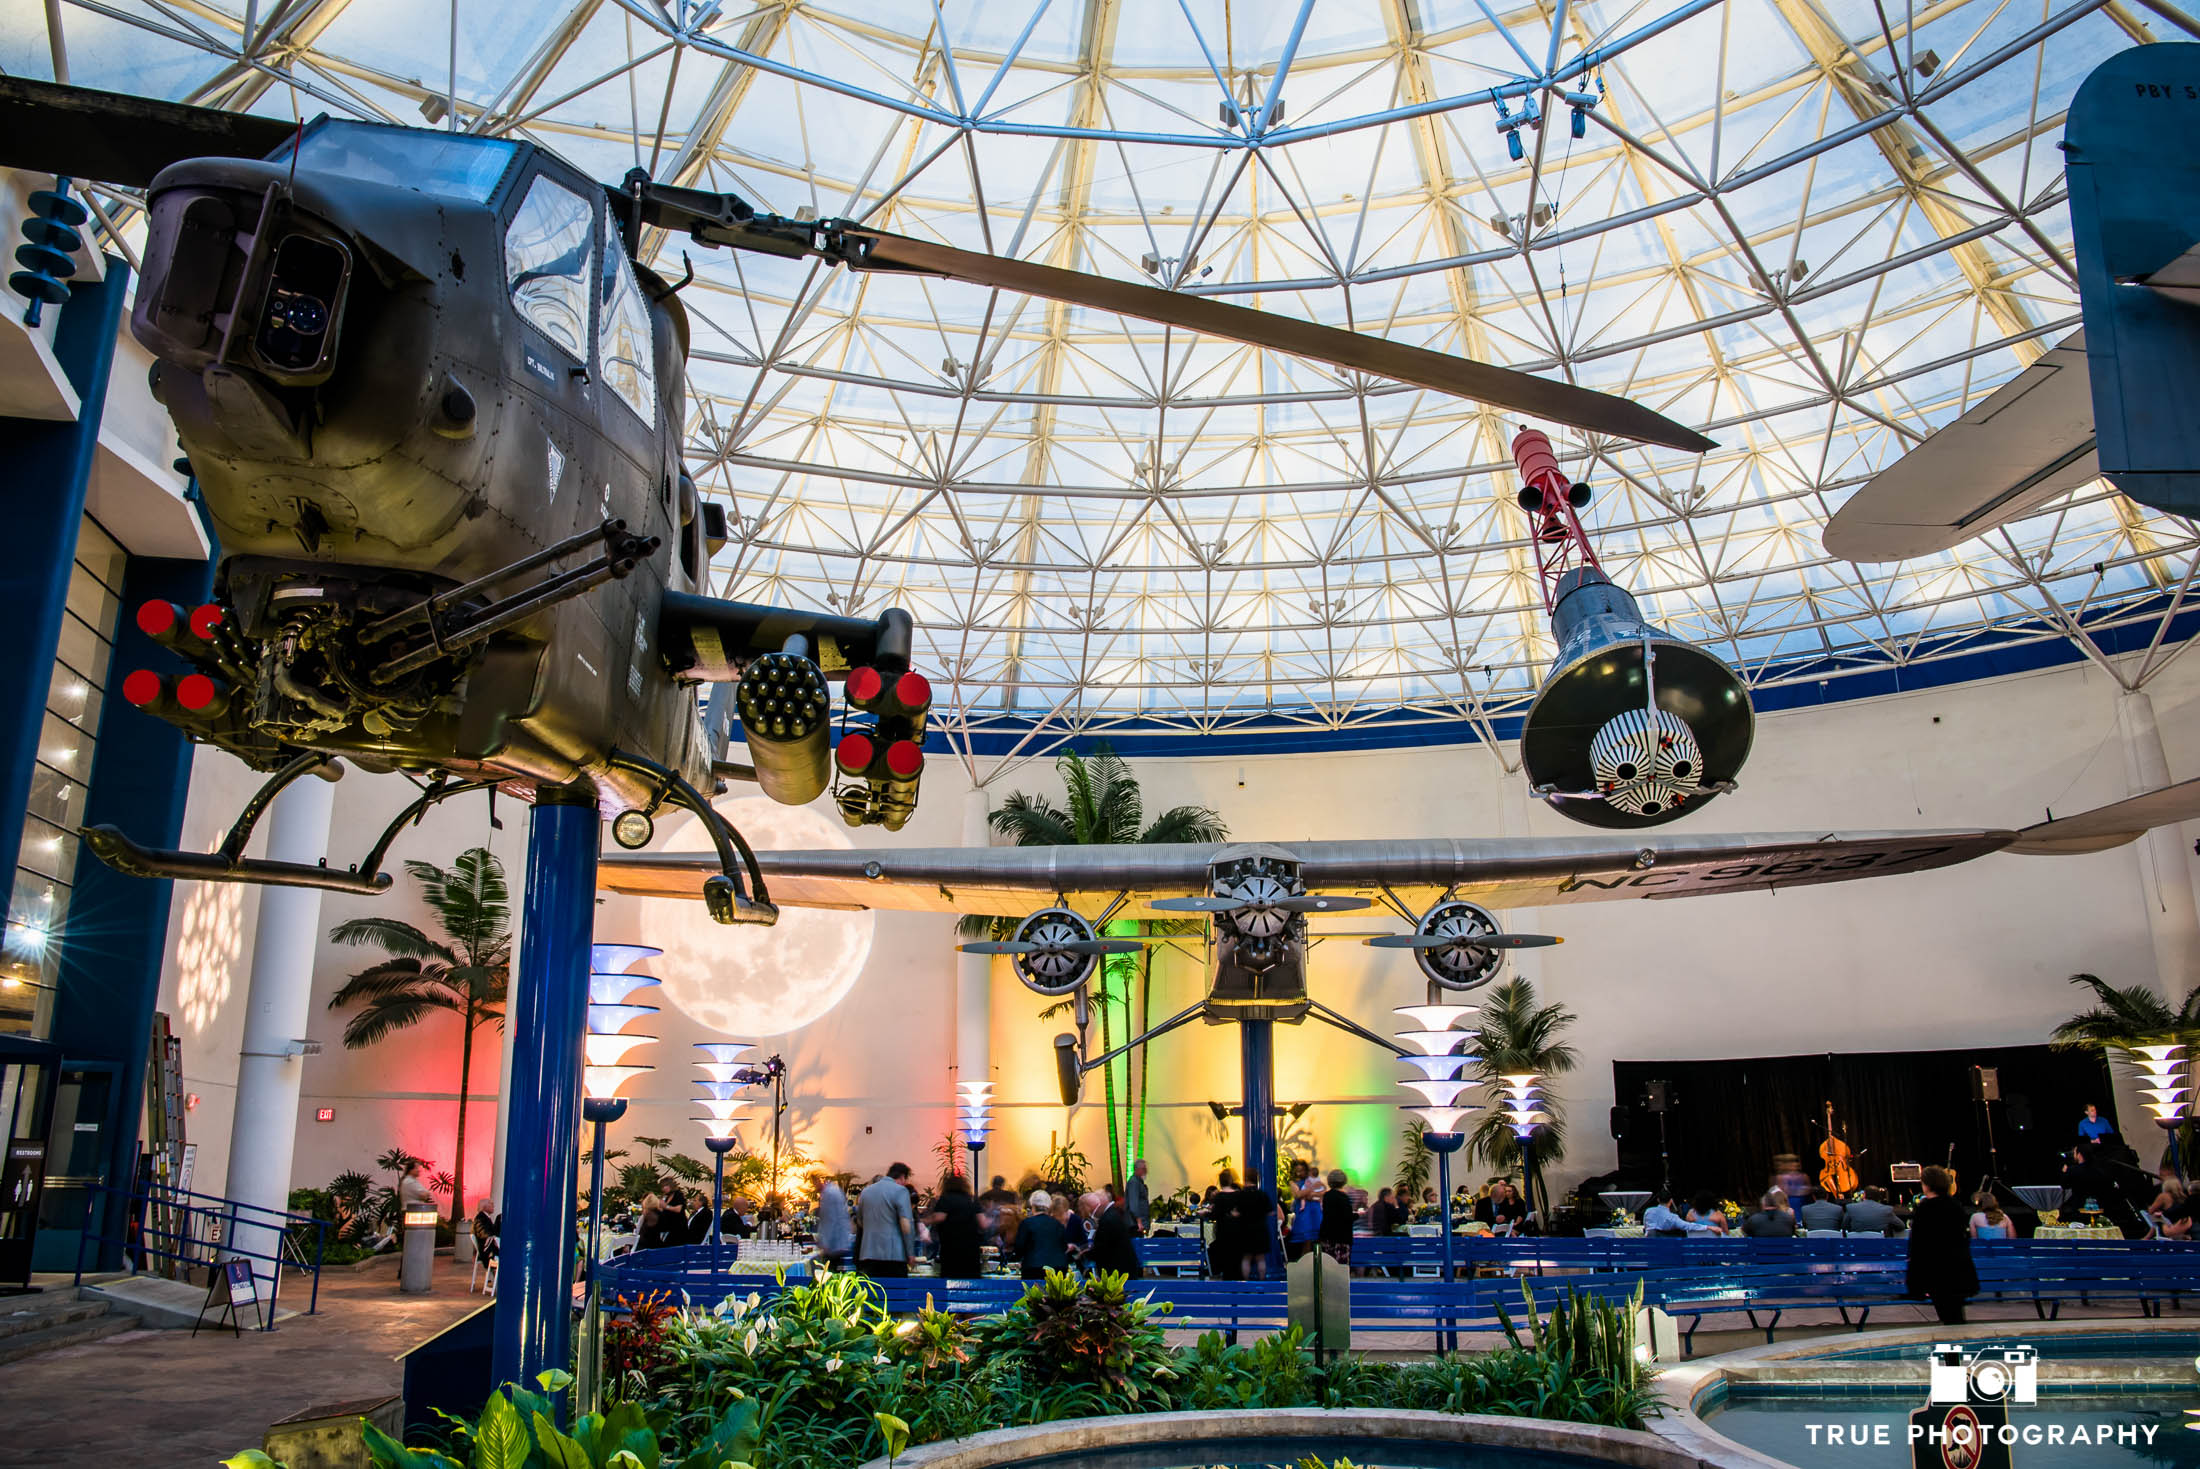 Overall view of wedding reception with colorful uplighting at Plane Museum